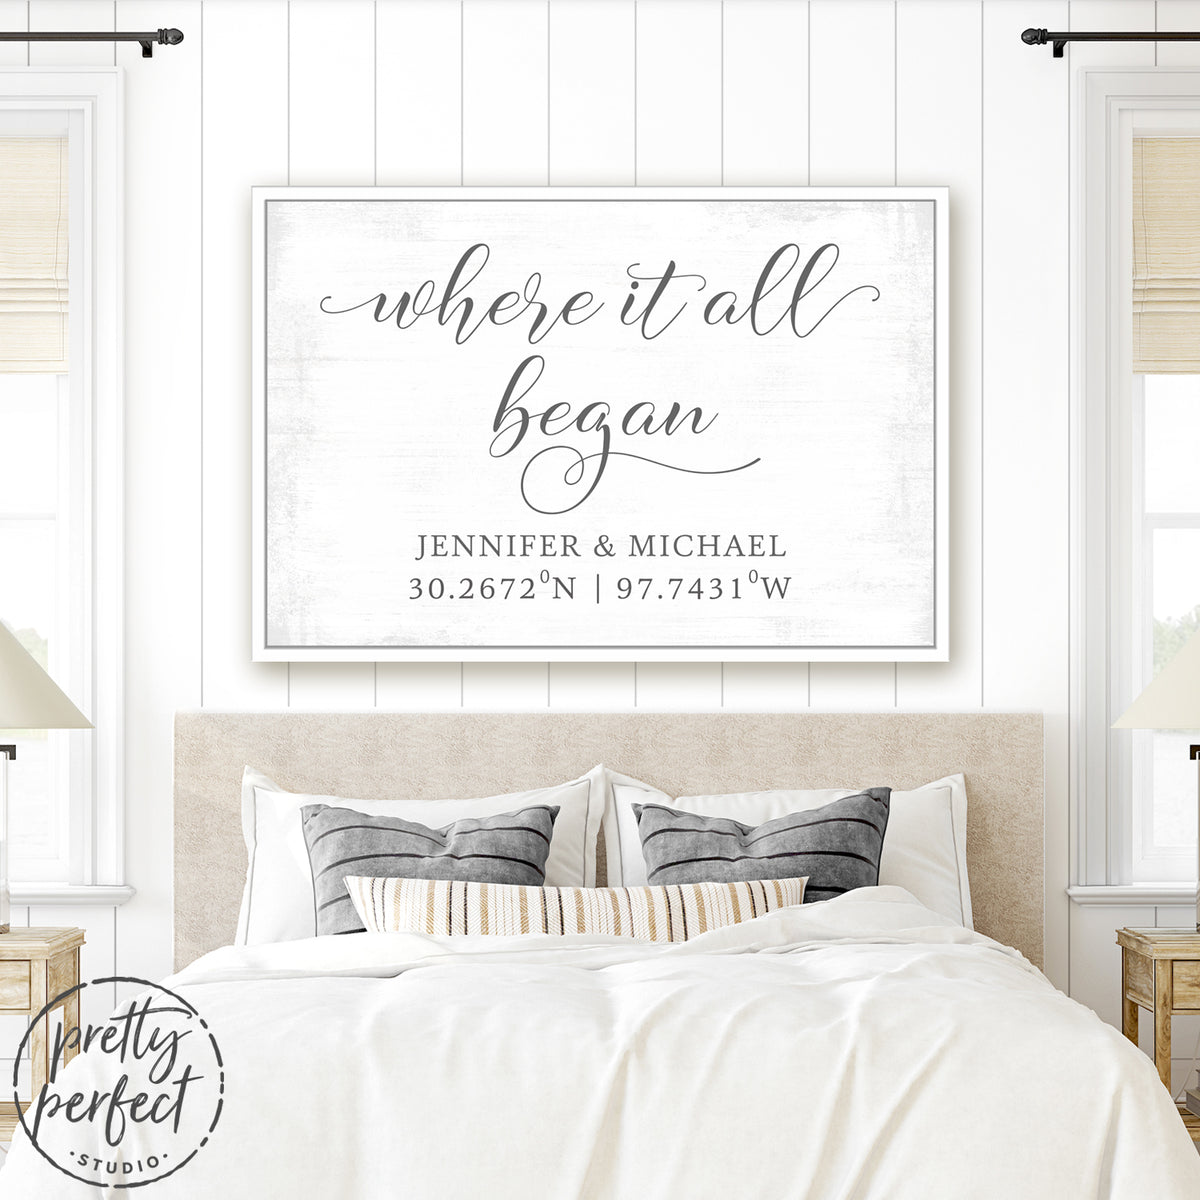 Where It All Began Sign With Name & Location Above Bed - Pretty Perfect Studio